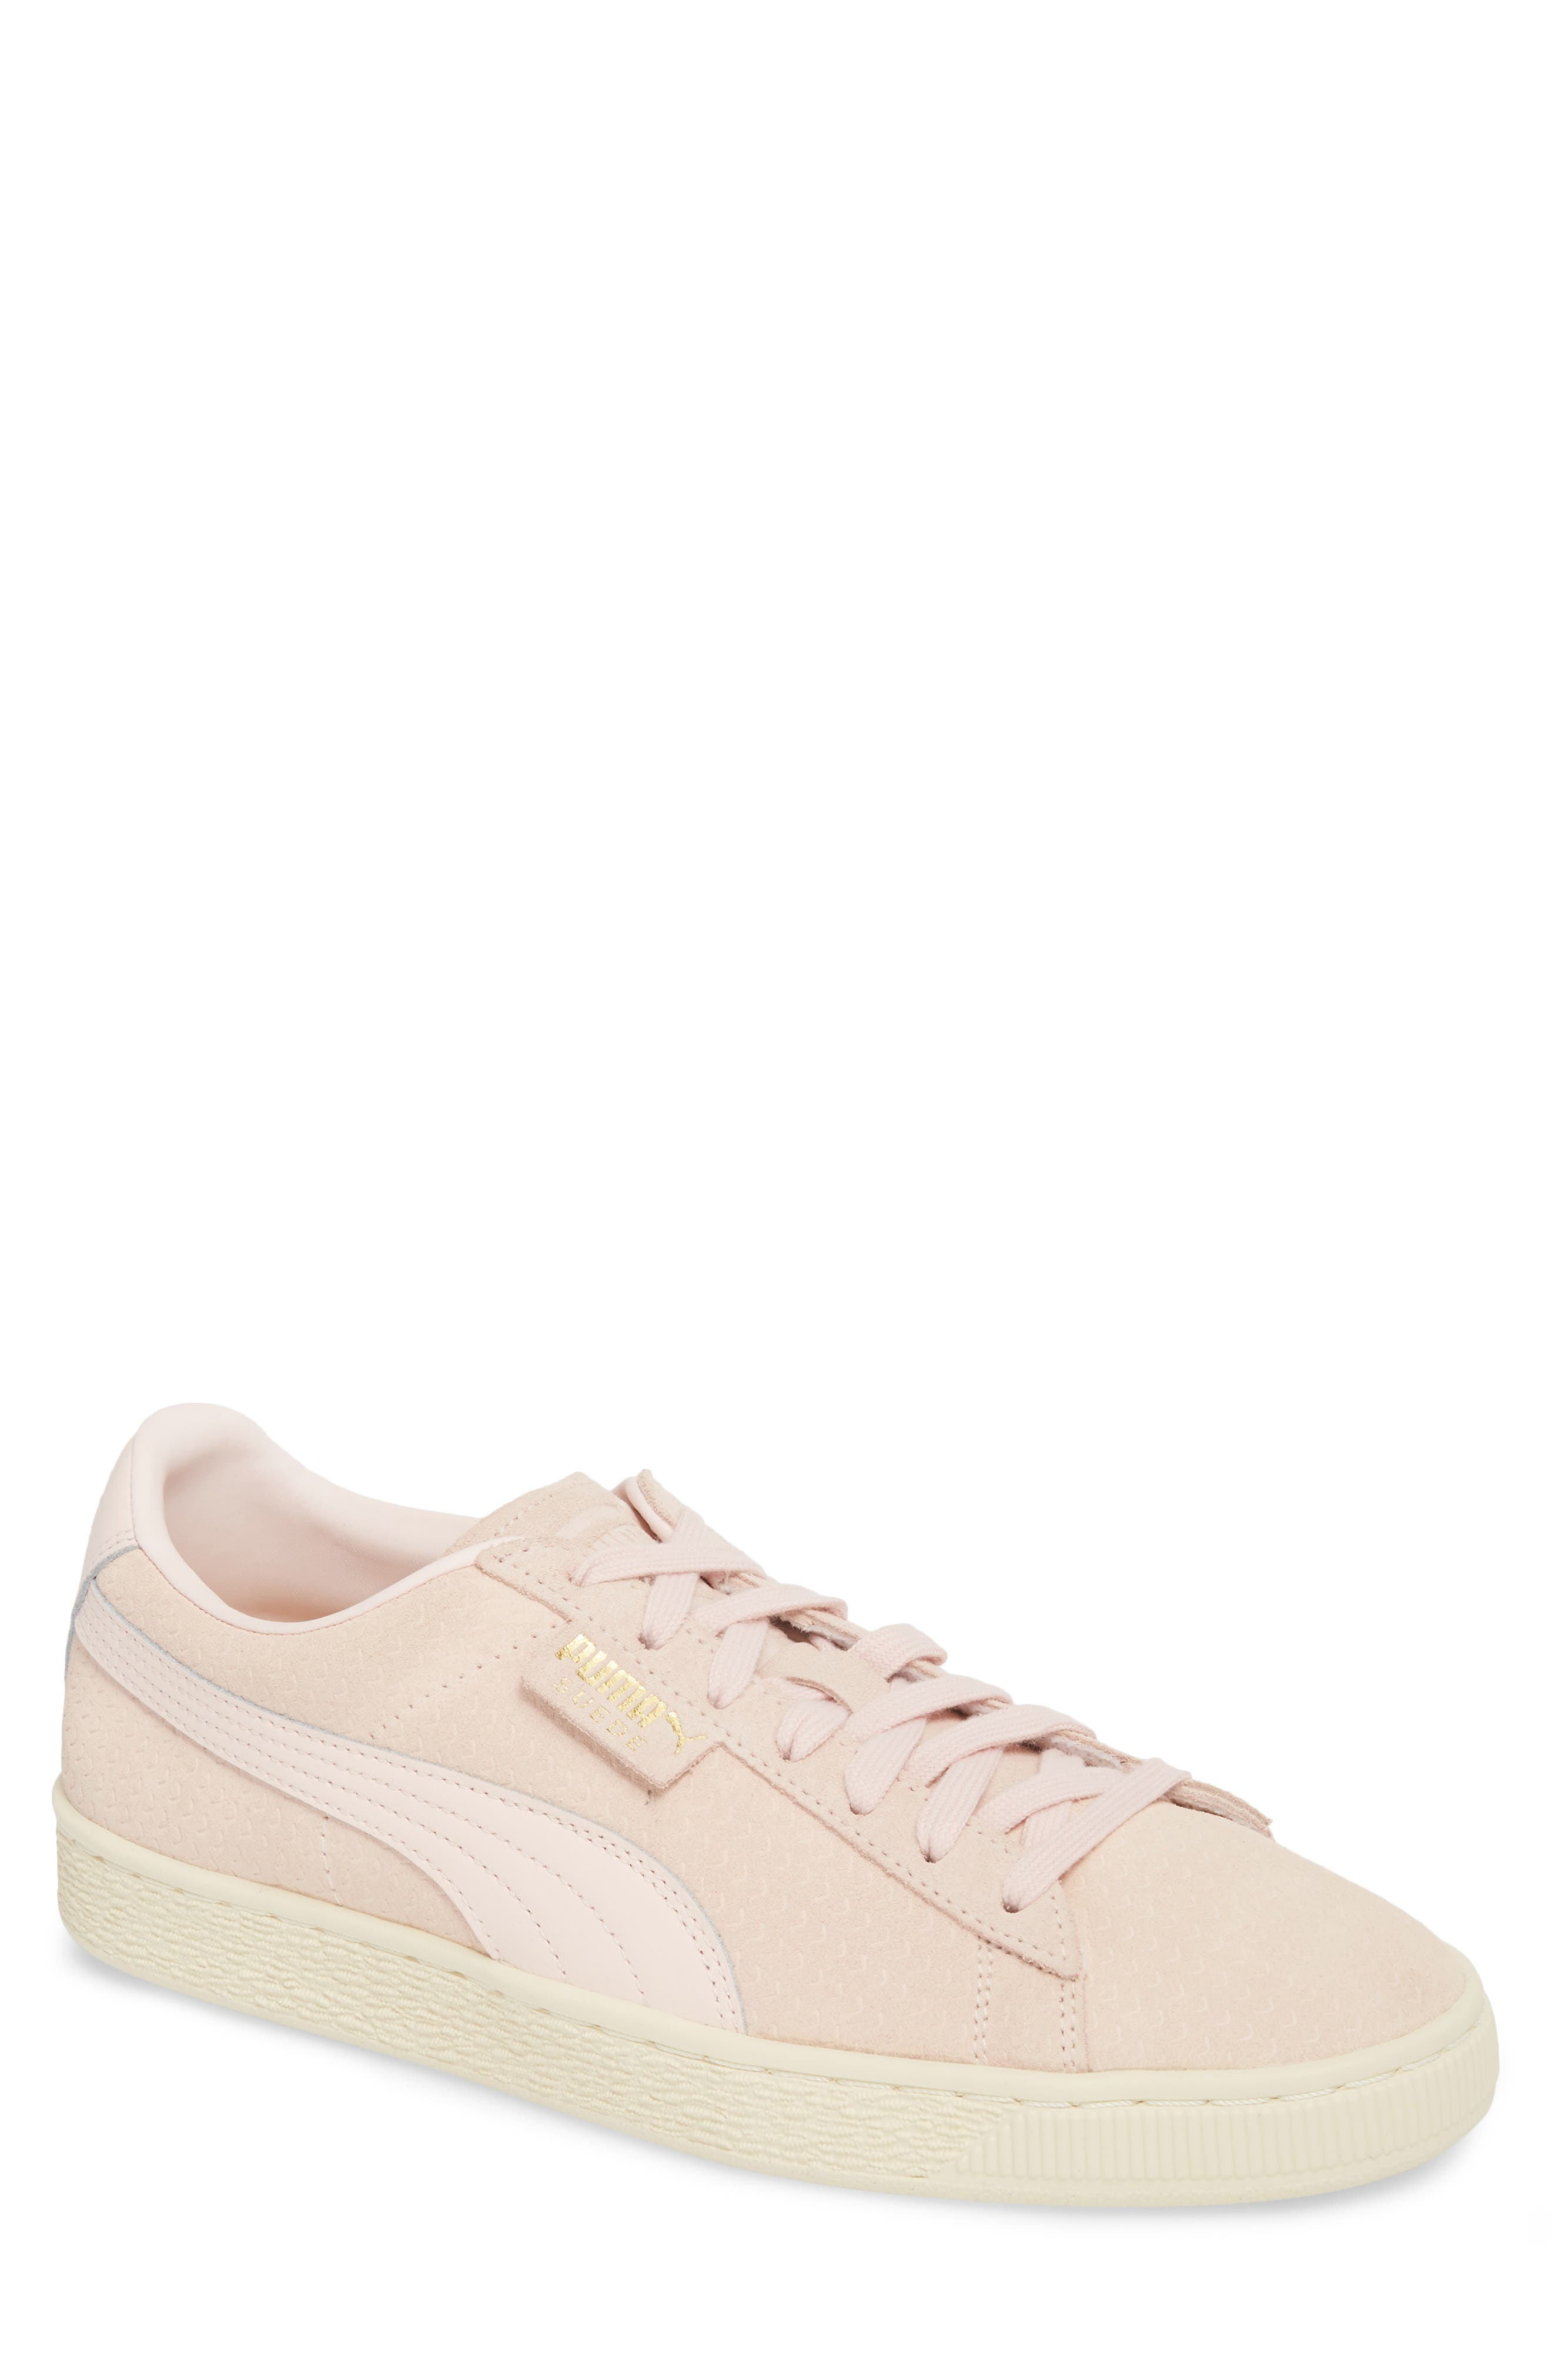 Suede Classic Perforation Sneaker,                         Main,                         color, Pearl/ Whisper White Suede